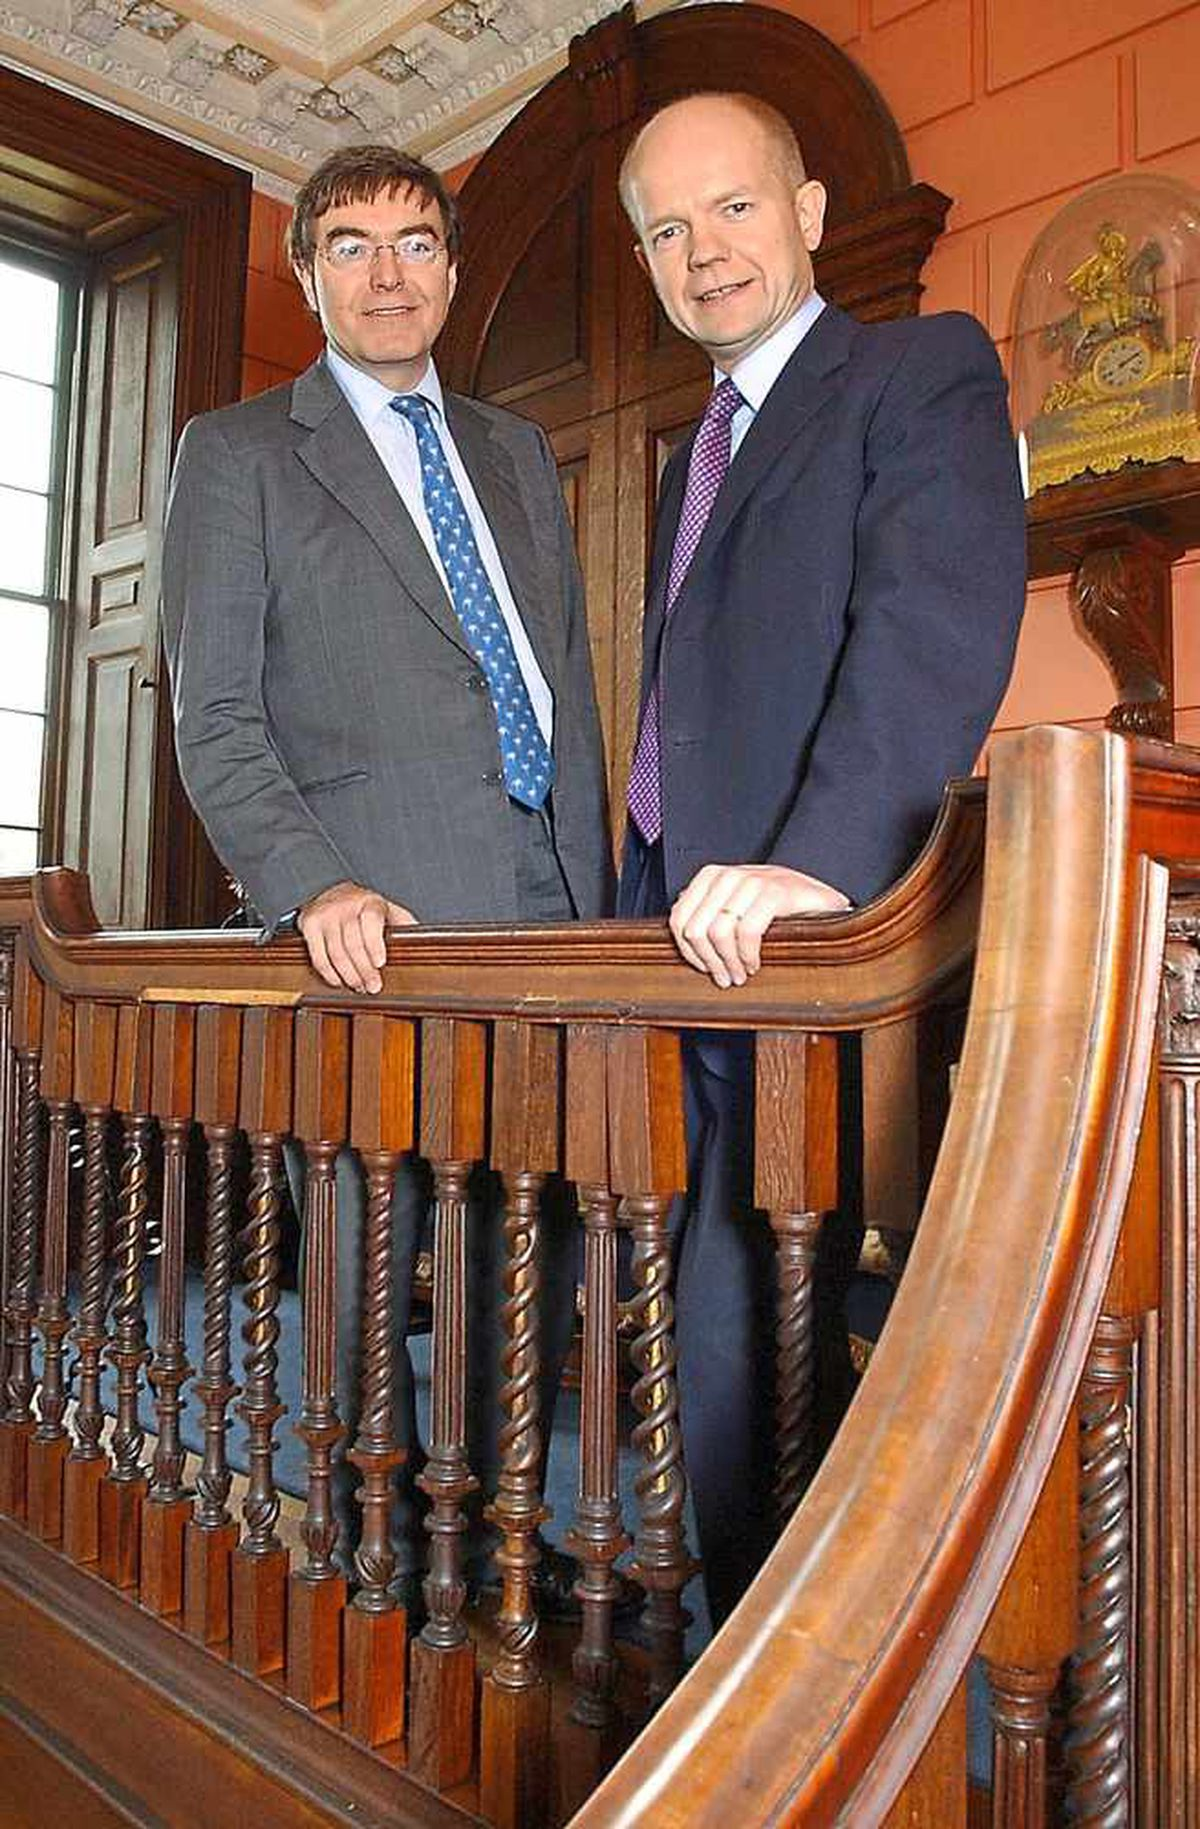 Philip Dunn, now MP for Ludlow, with former Conservative leader William Hague at Davenport House